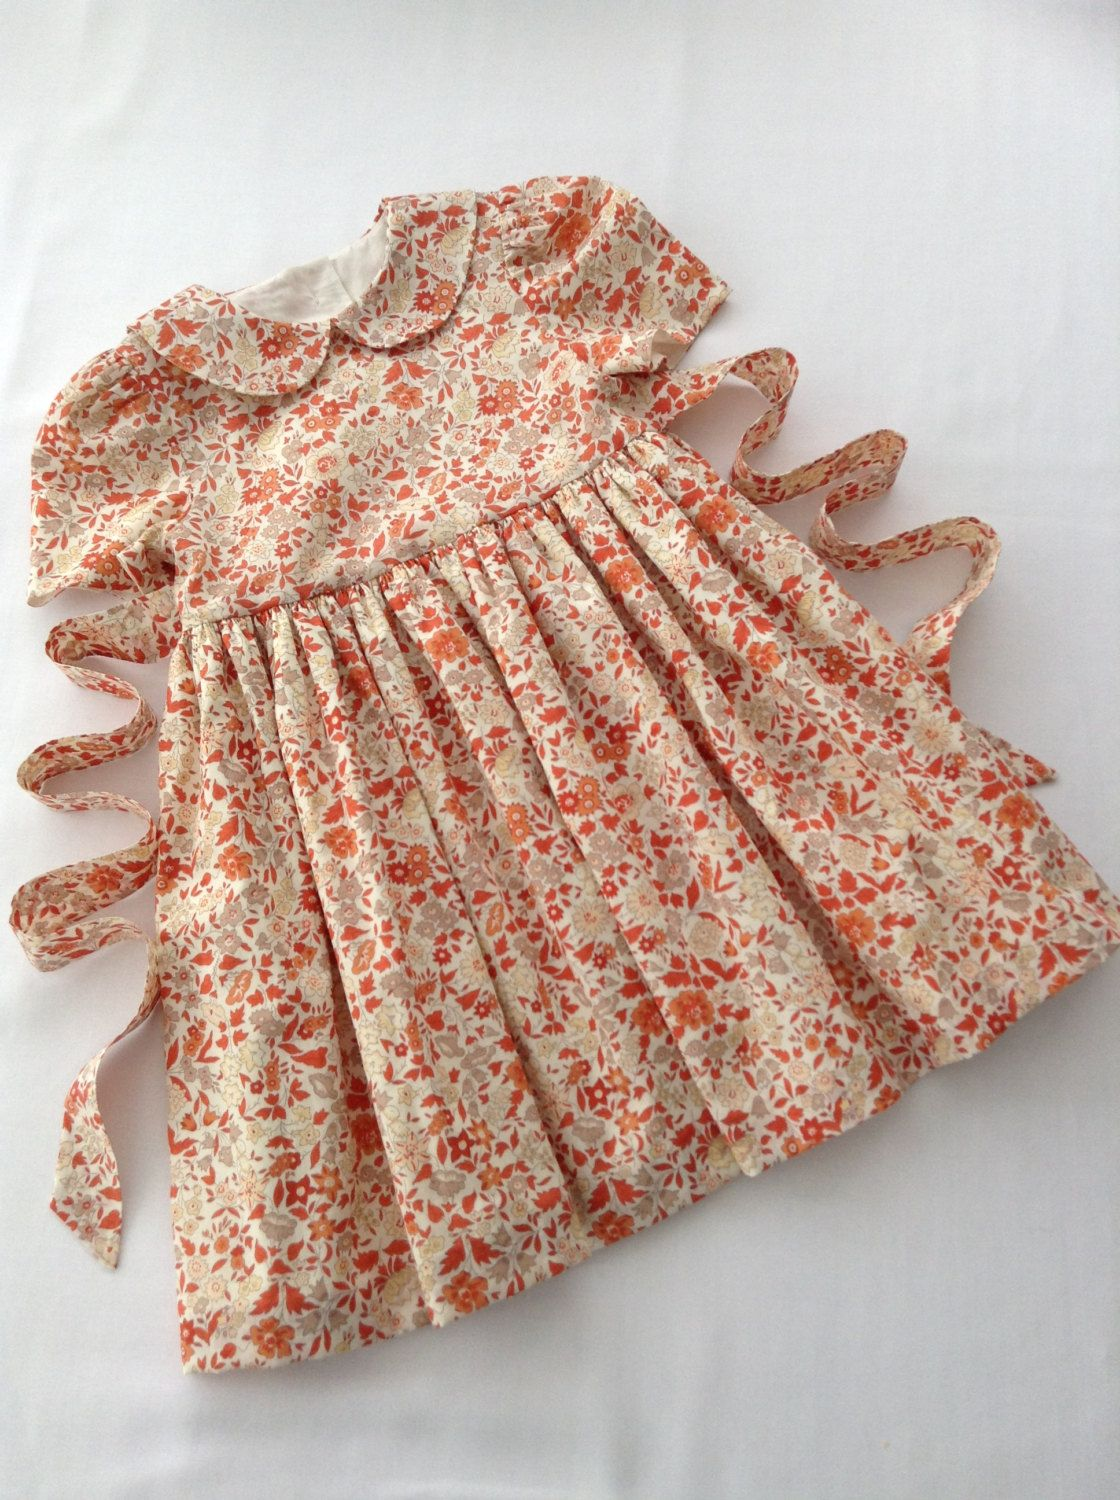 Description A Beautiful Summer Dress Handcrafted In A Classic Liberty Fabric Perfect For That Sp Kids Dress Collection Kids Frocks Design Girls Frock Design [ 1500 x 1120 Pixel ]